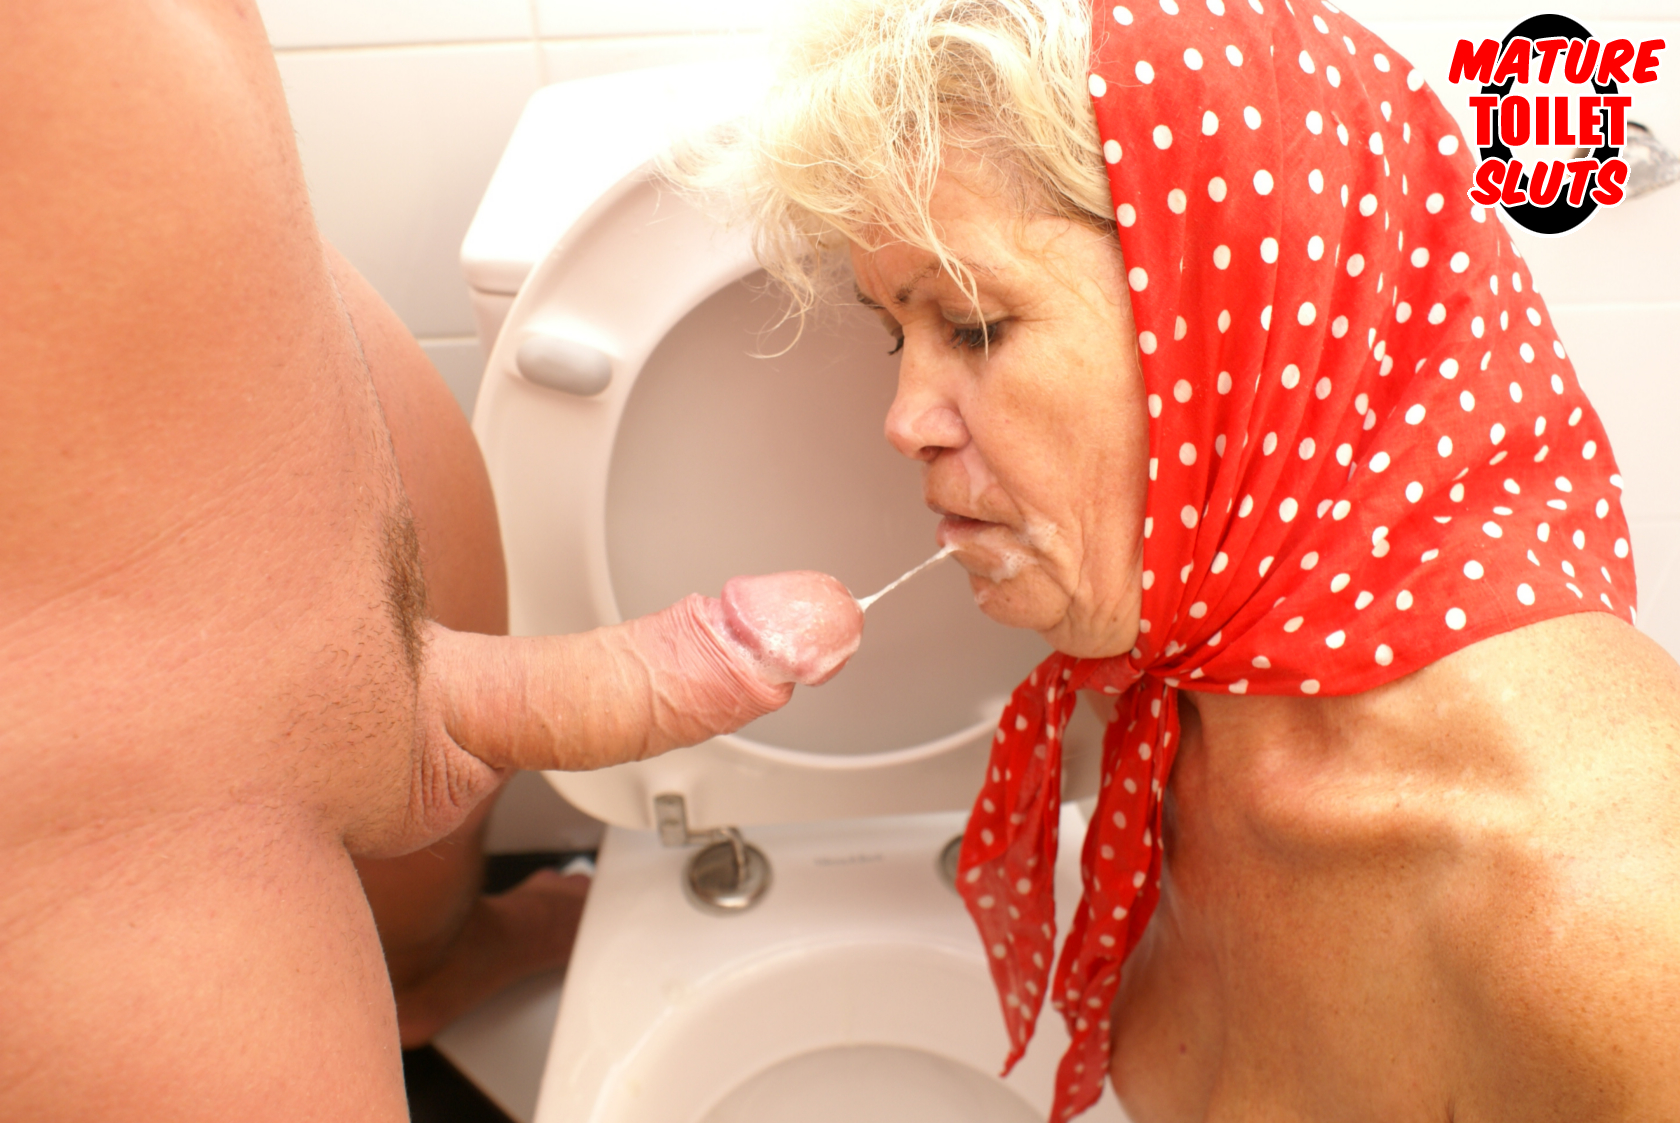 72 year old granny gives a blowjob and gets fucked 4